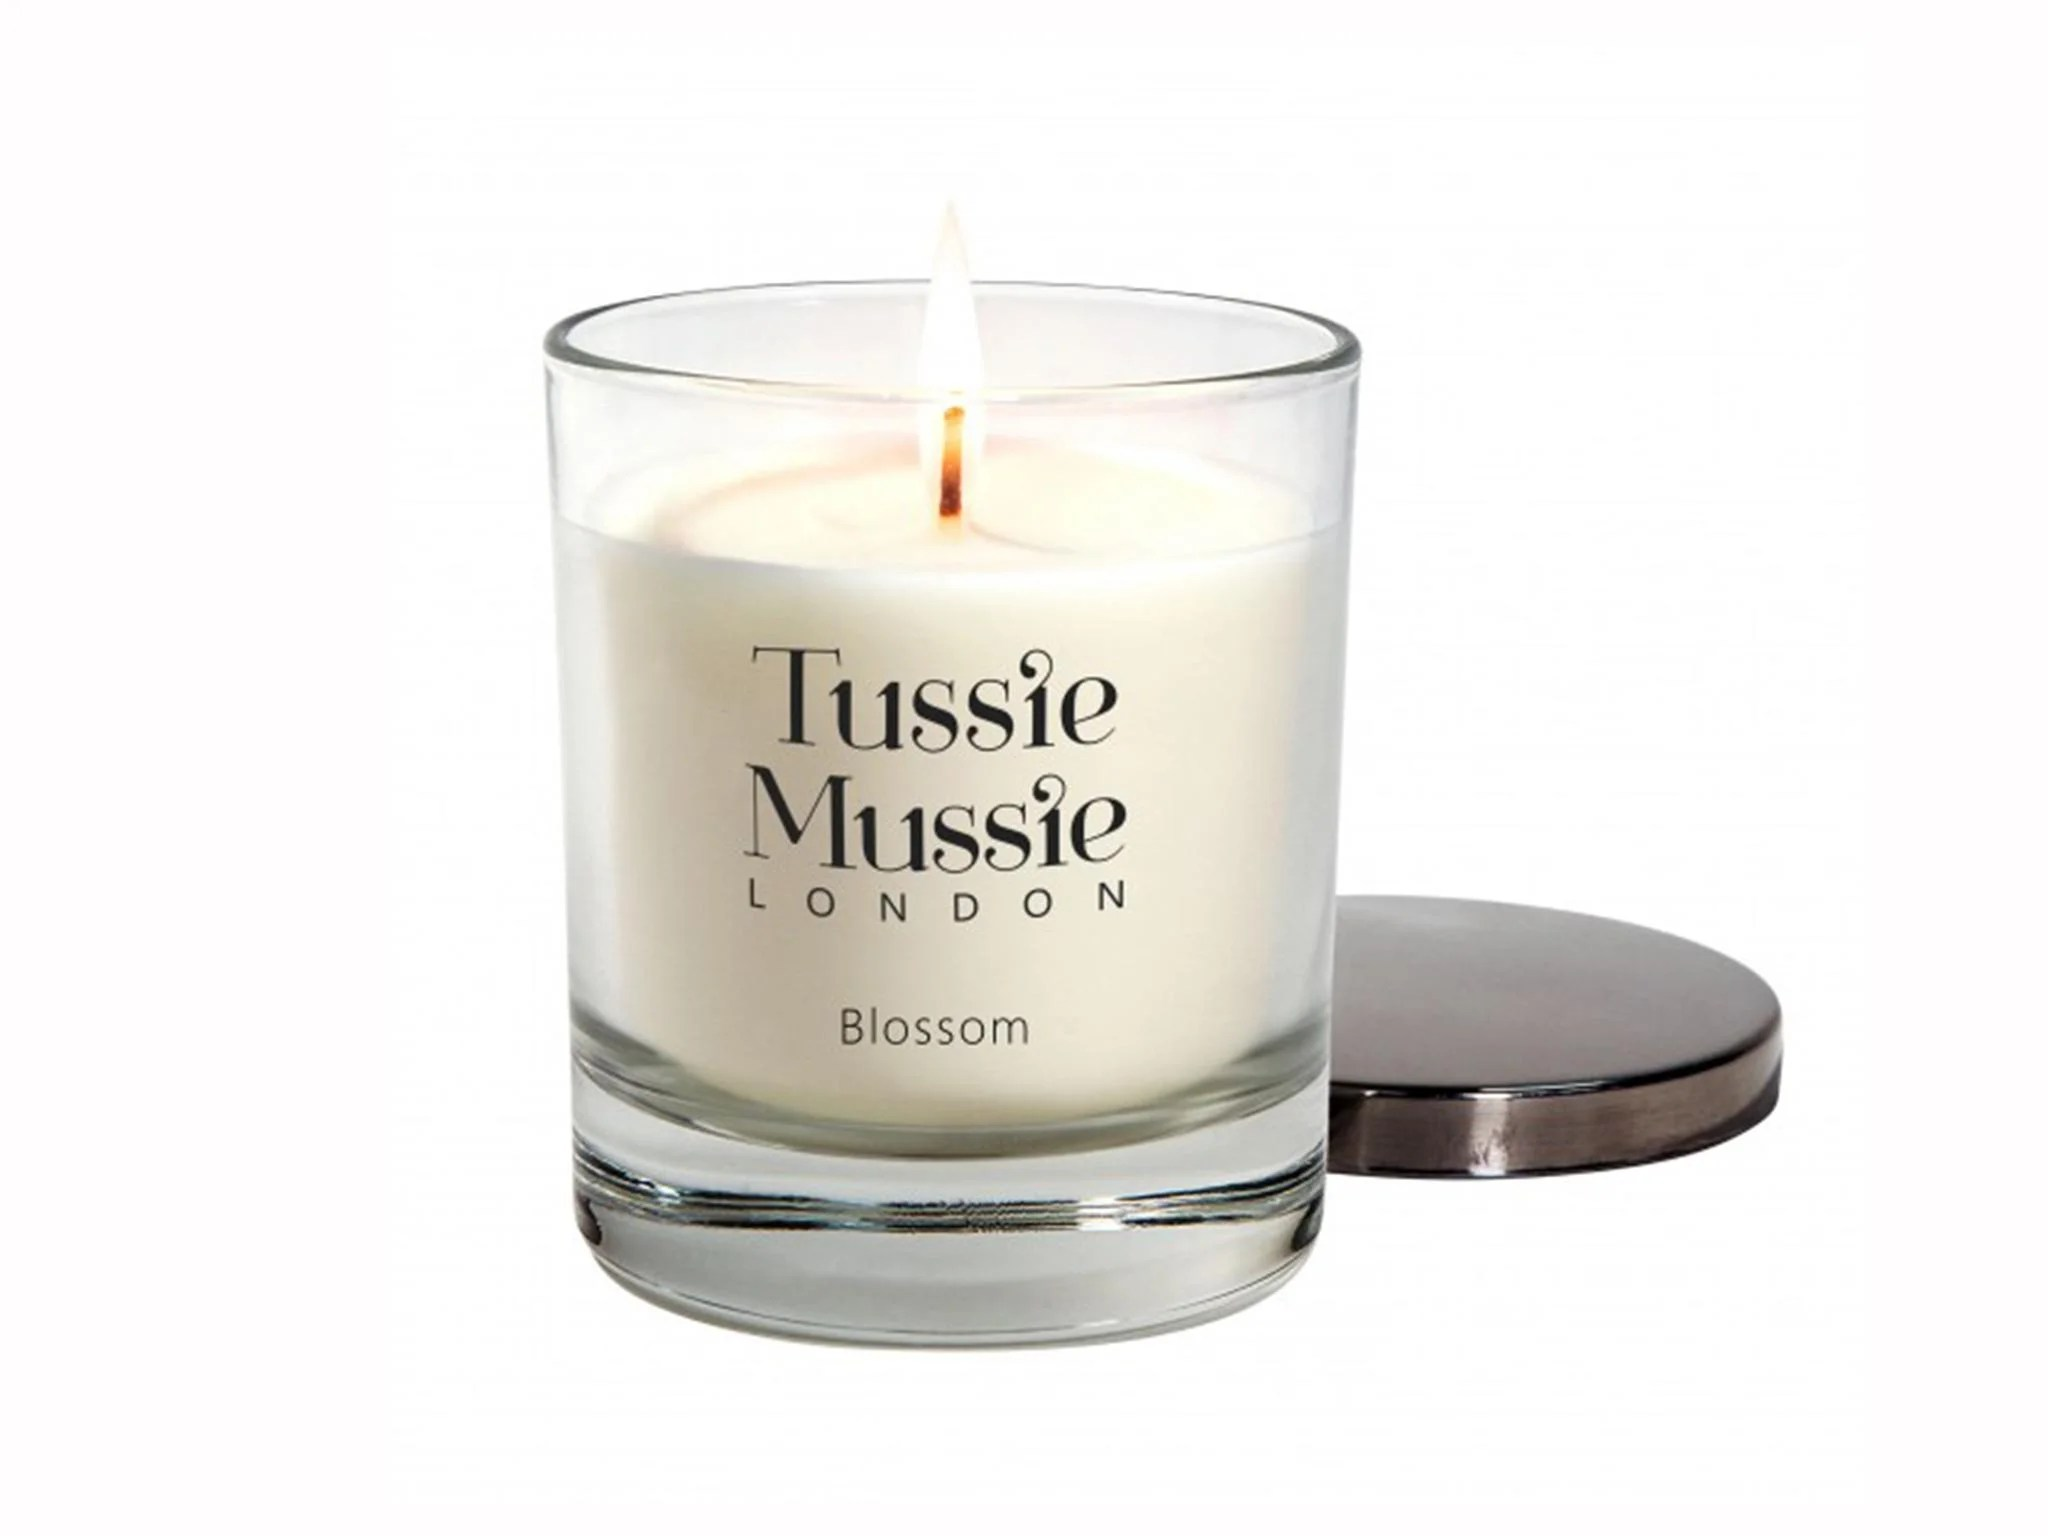 Best Scented Candles 2020 Relax During Lockdown With Luxury Aromas The Independent